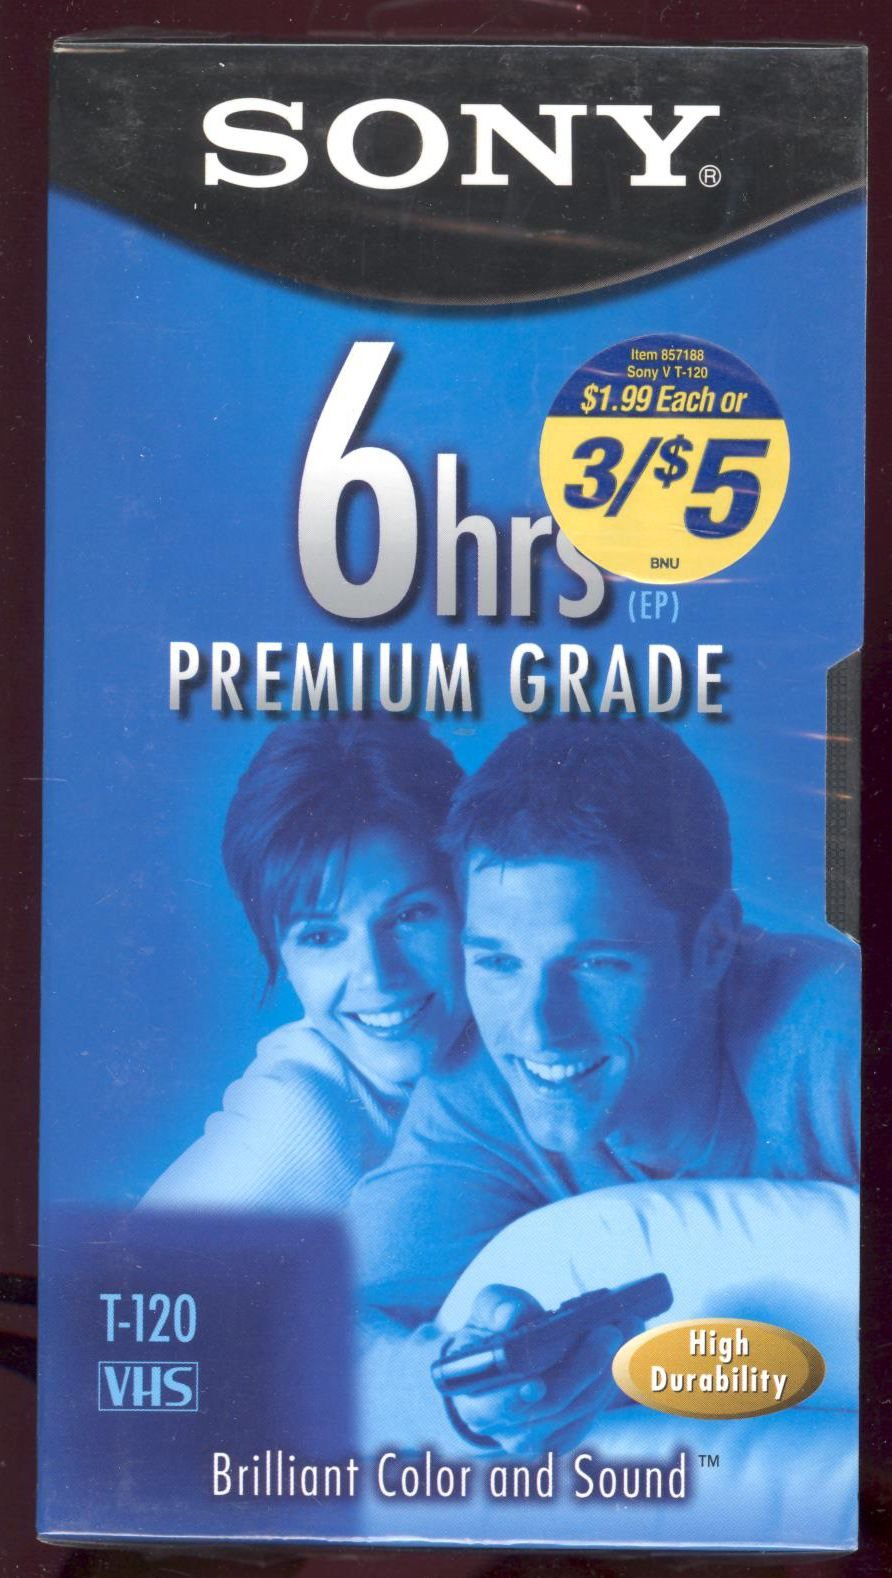 SONY T-120/160 V Premium Grade Videocassettes (SONY T120160V) (Discontinued by Manufacturer)